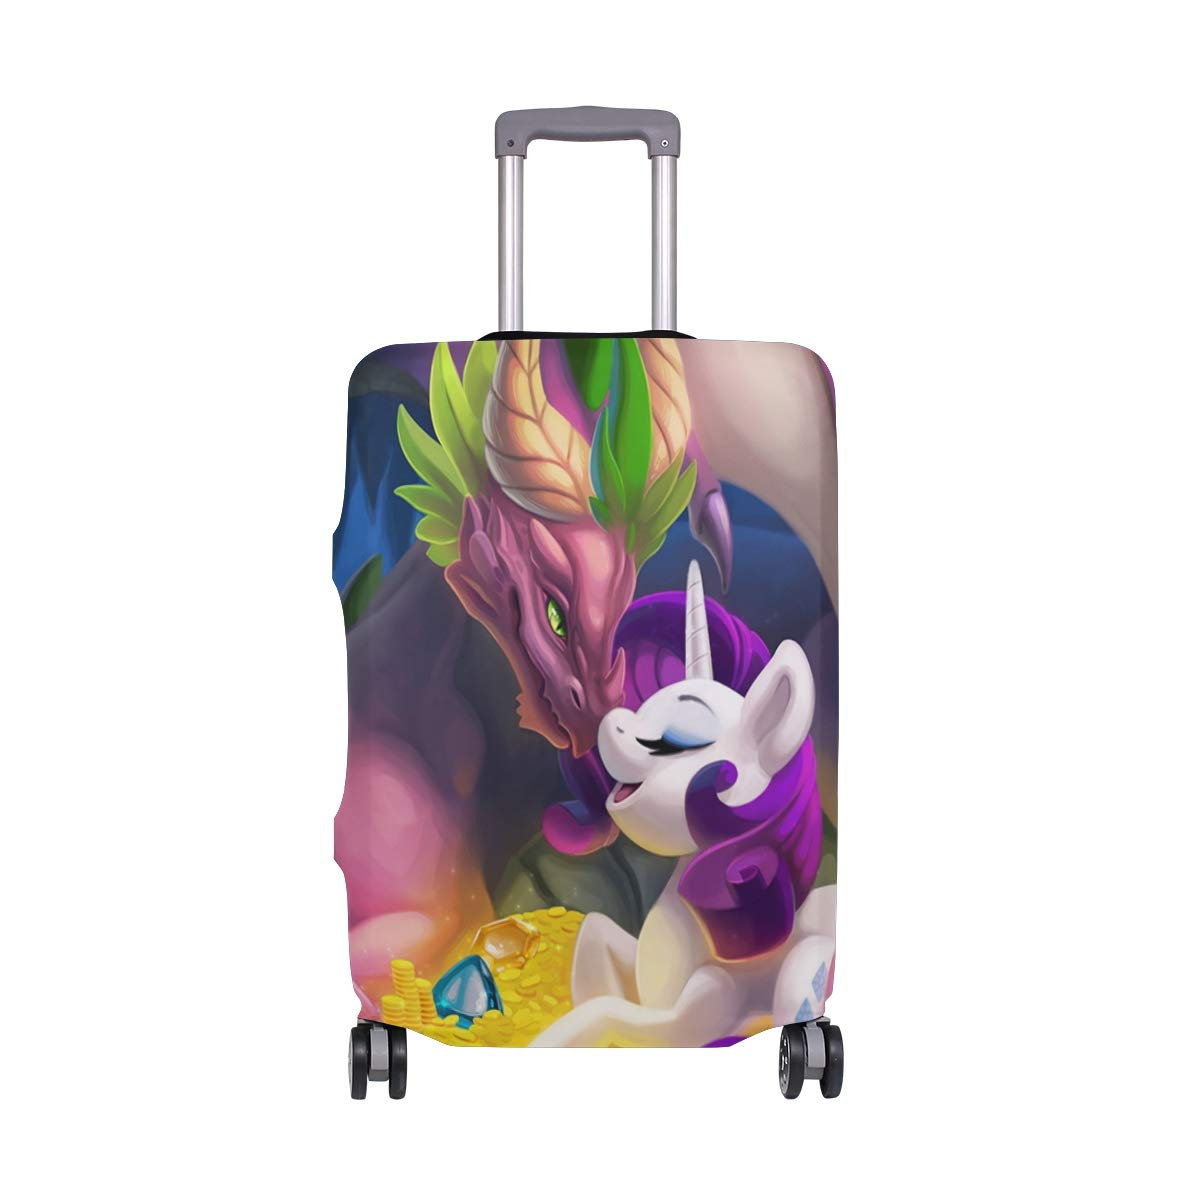 My Little Rainbow Pony Dragon Treasure Travel Luggage Cover Suitcase Protector Fits 26-28 Inch Washable Baggage Covers